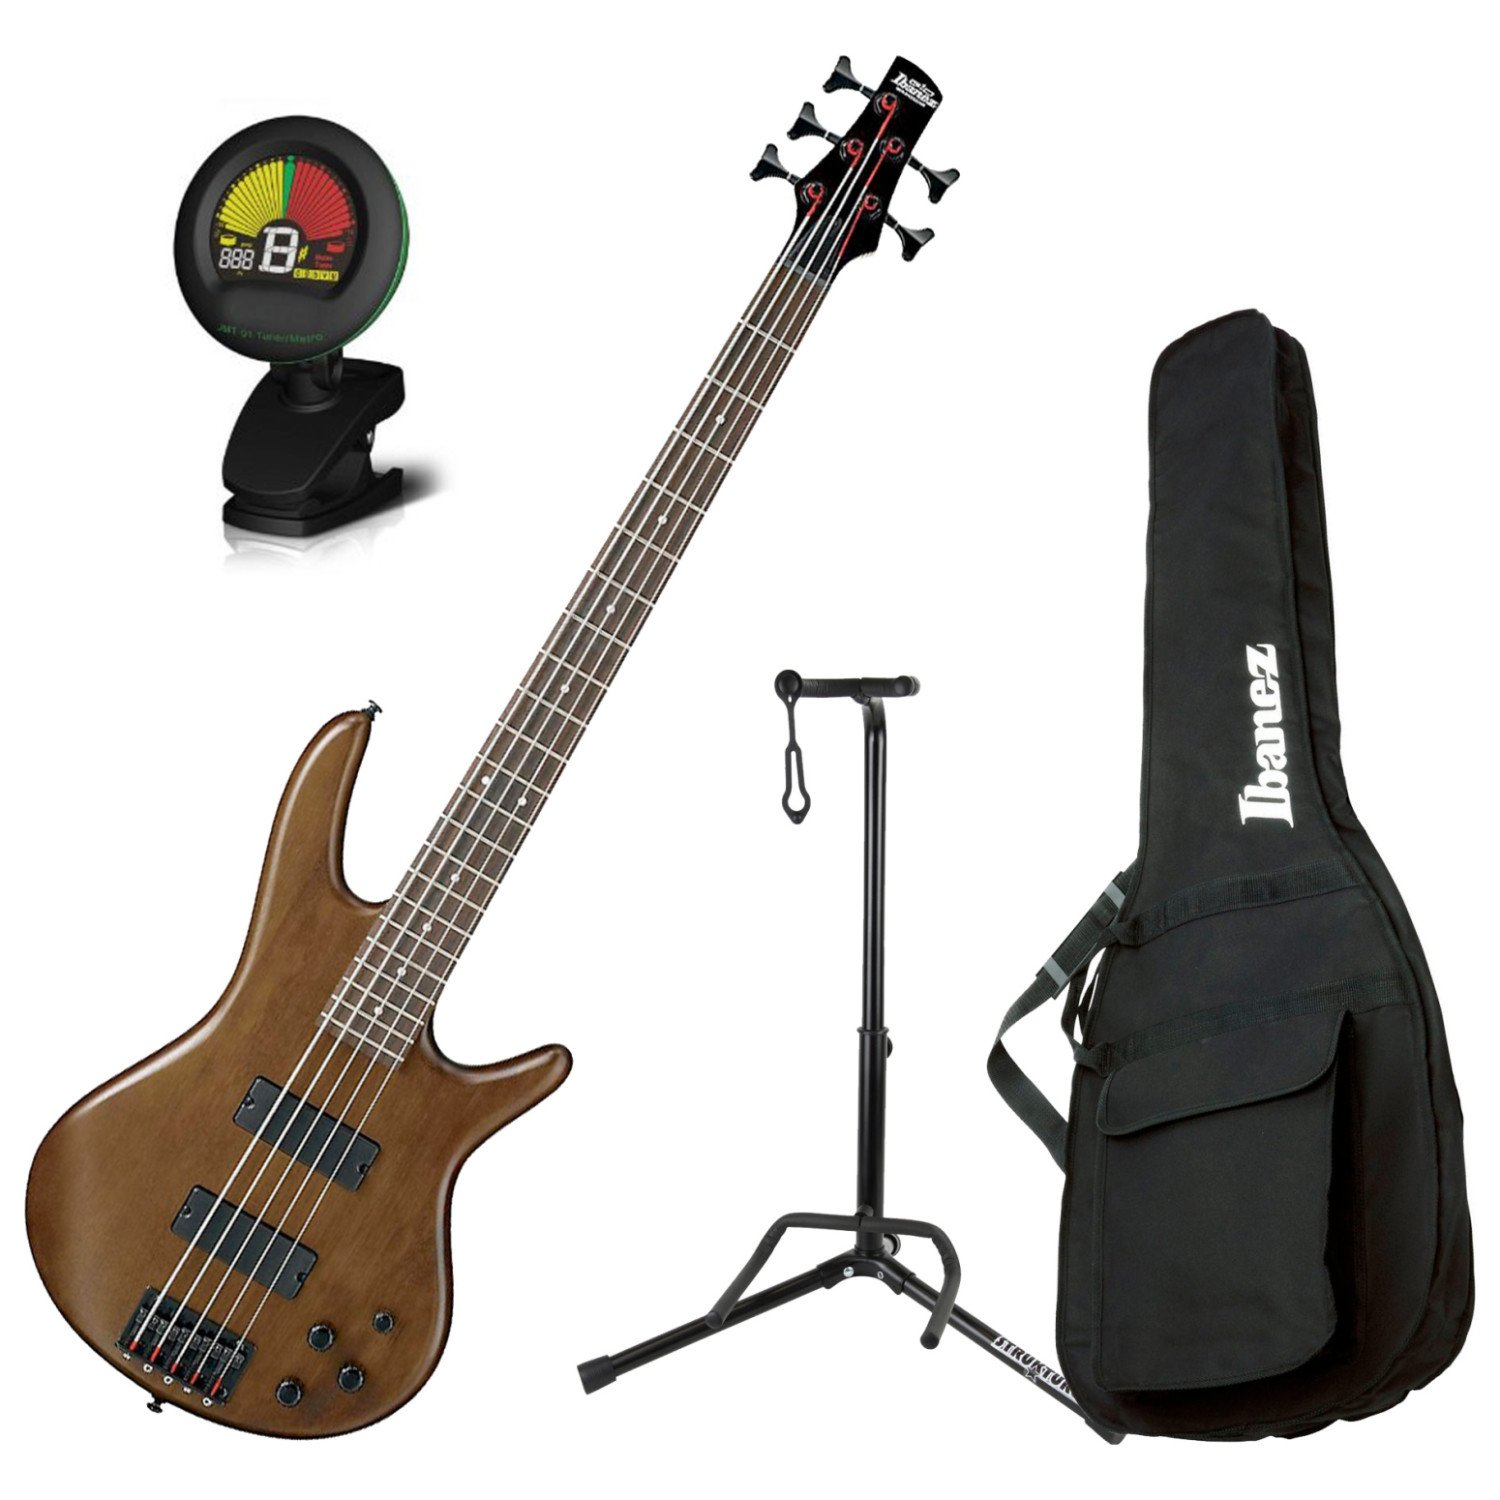 Ibanez GSR205BWNF 5 String Walunt Flat Finish Electric Bass with Gig Bag, Stand, and Tuner by Ibanez (Image #1)